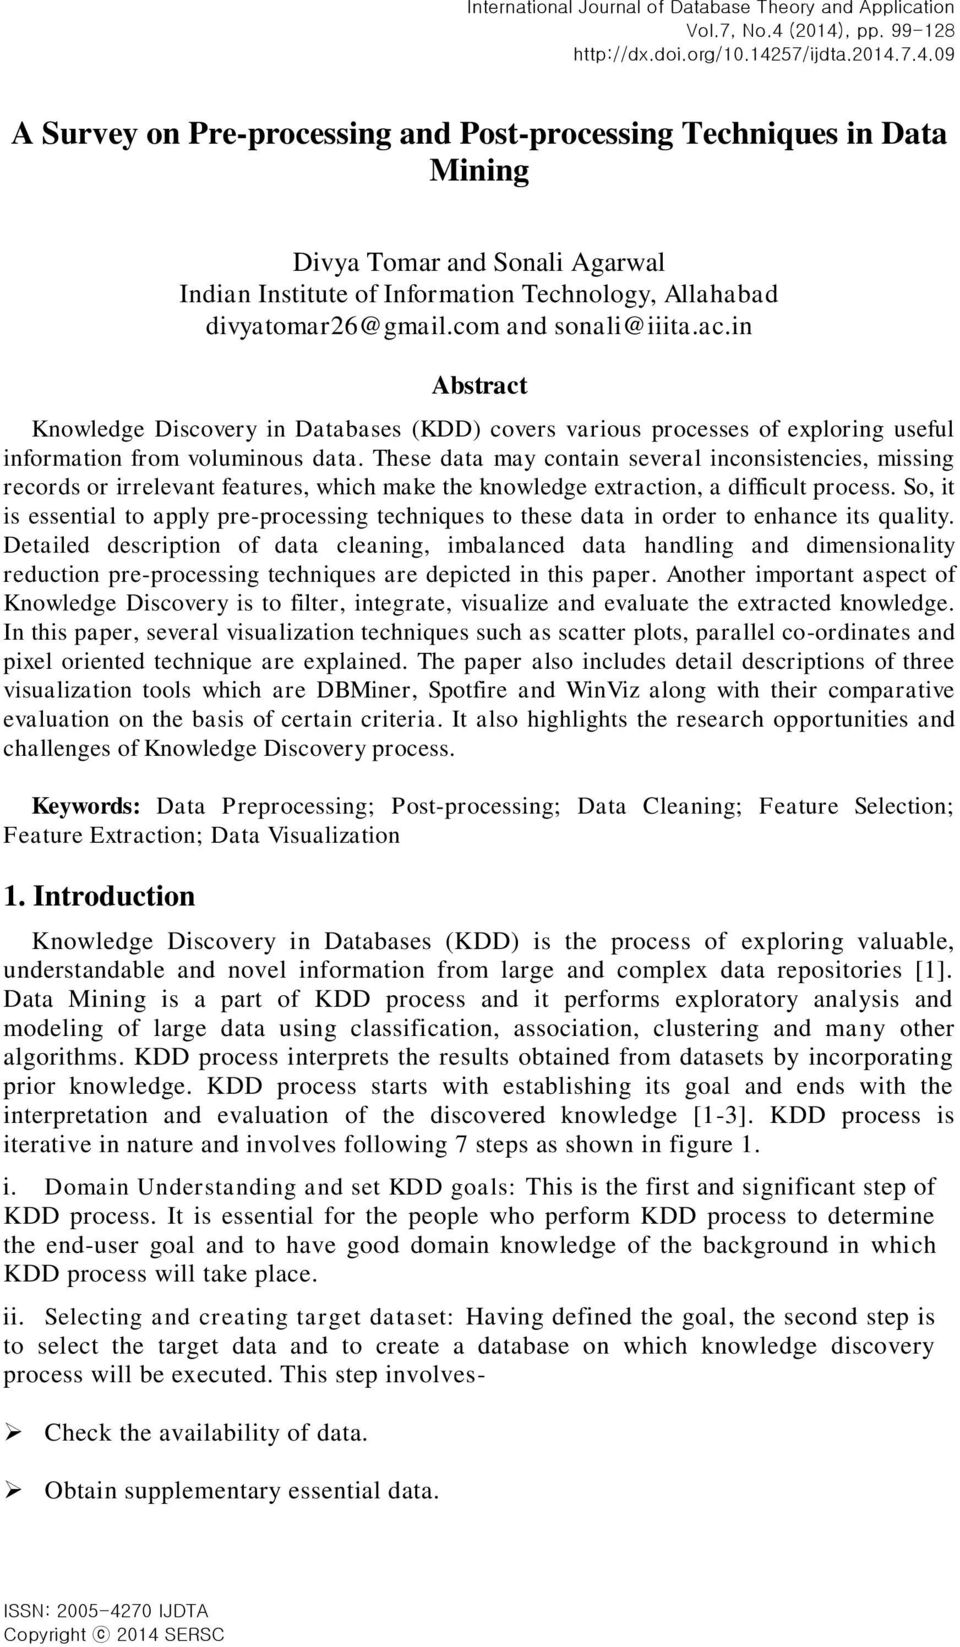 com and sonali@iiita.ac.in Abstract Knowledge Discovery in Databases (KDD) covers various processes of exploring useful information from voluminous data.